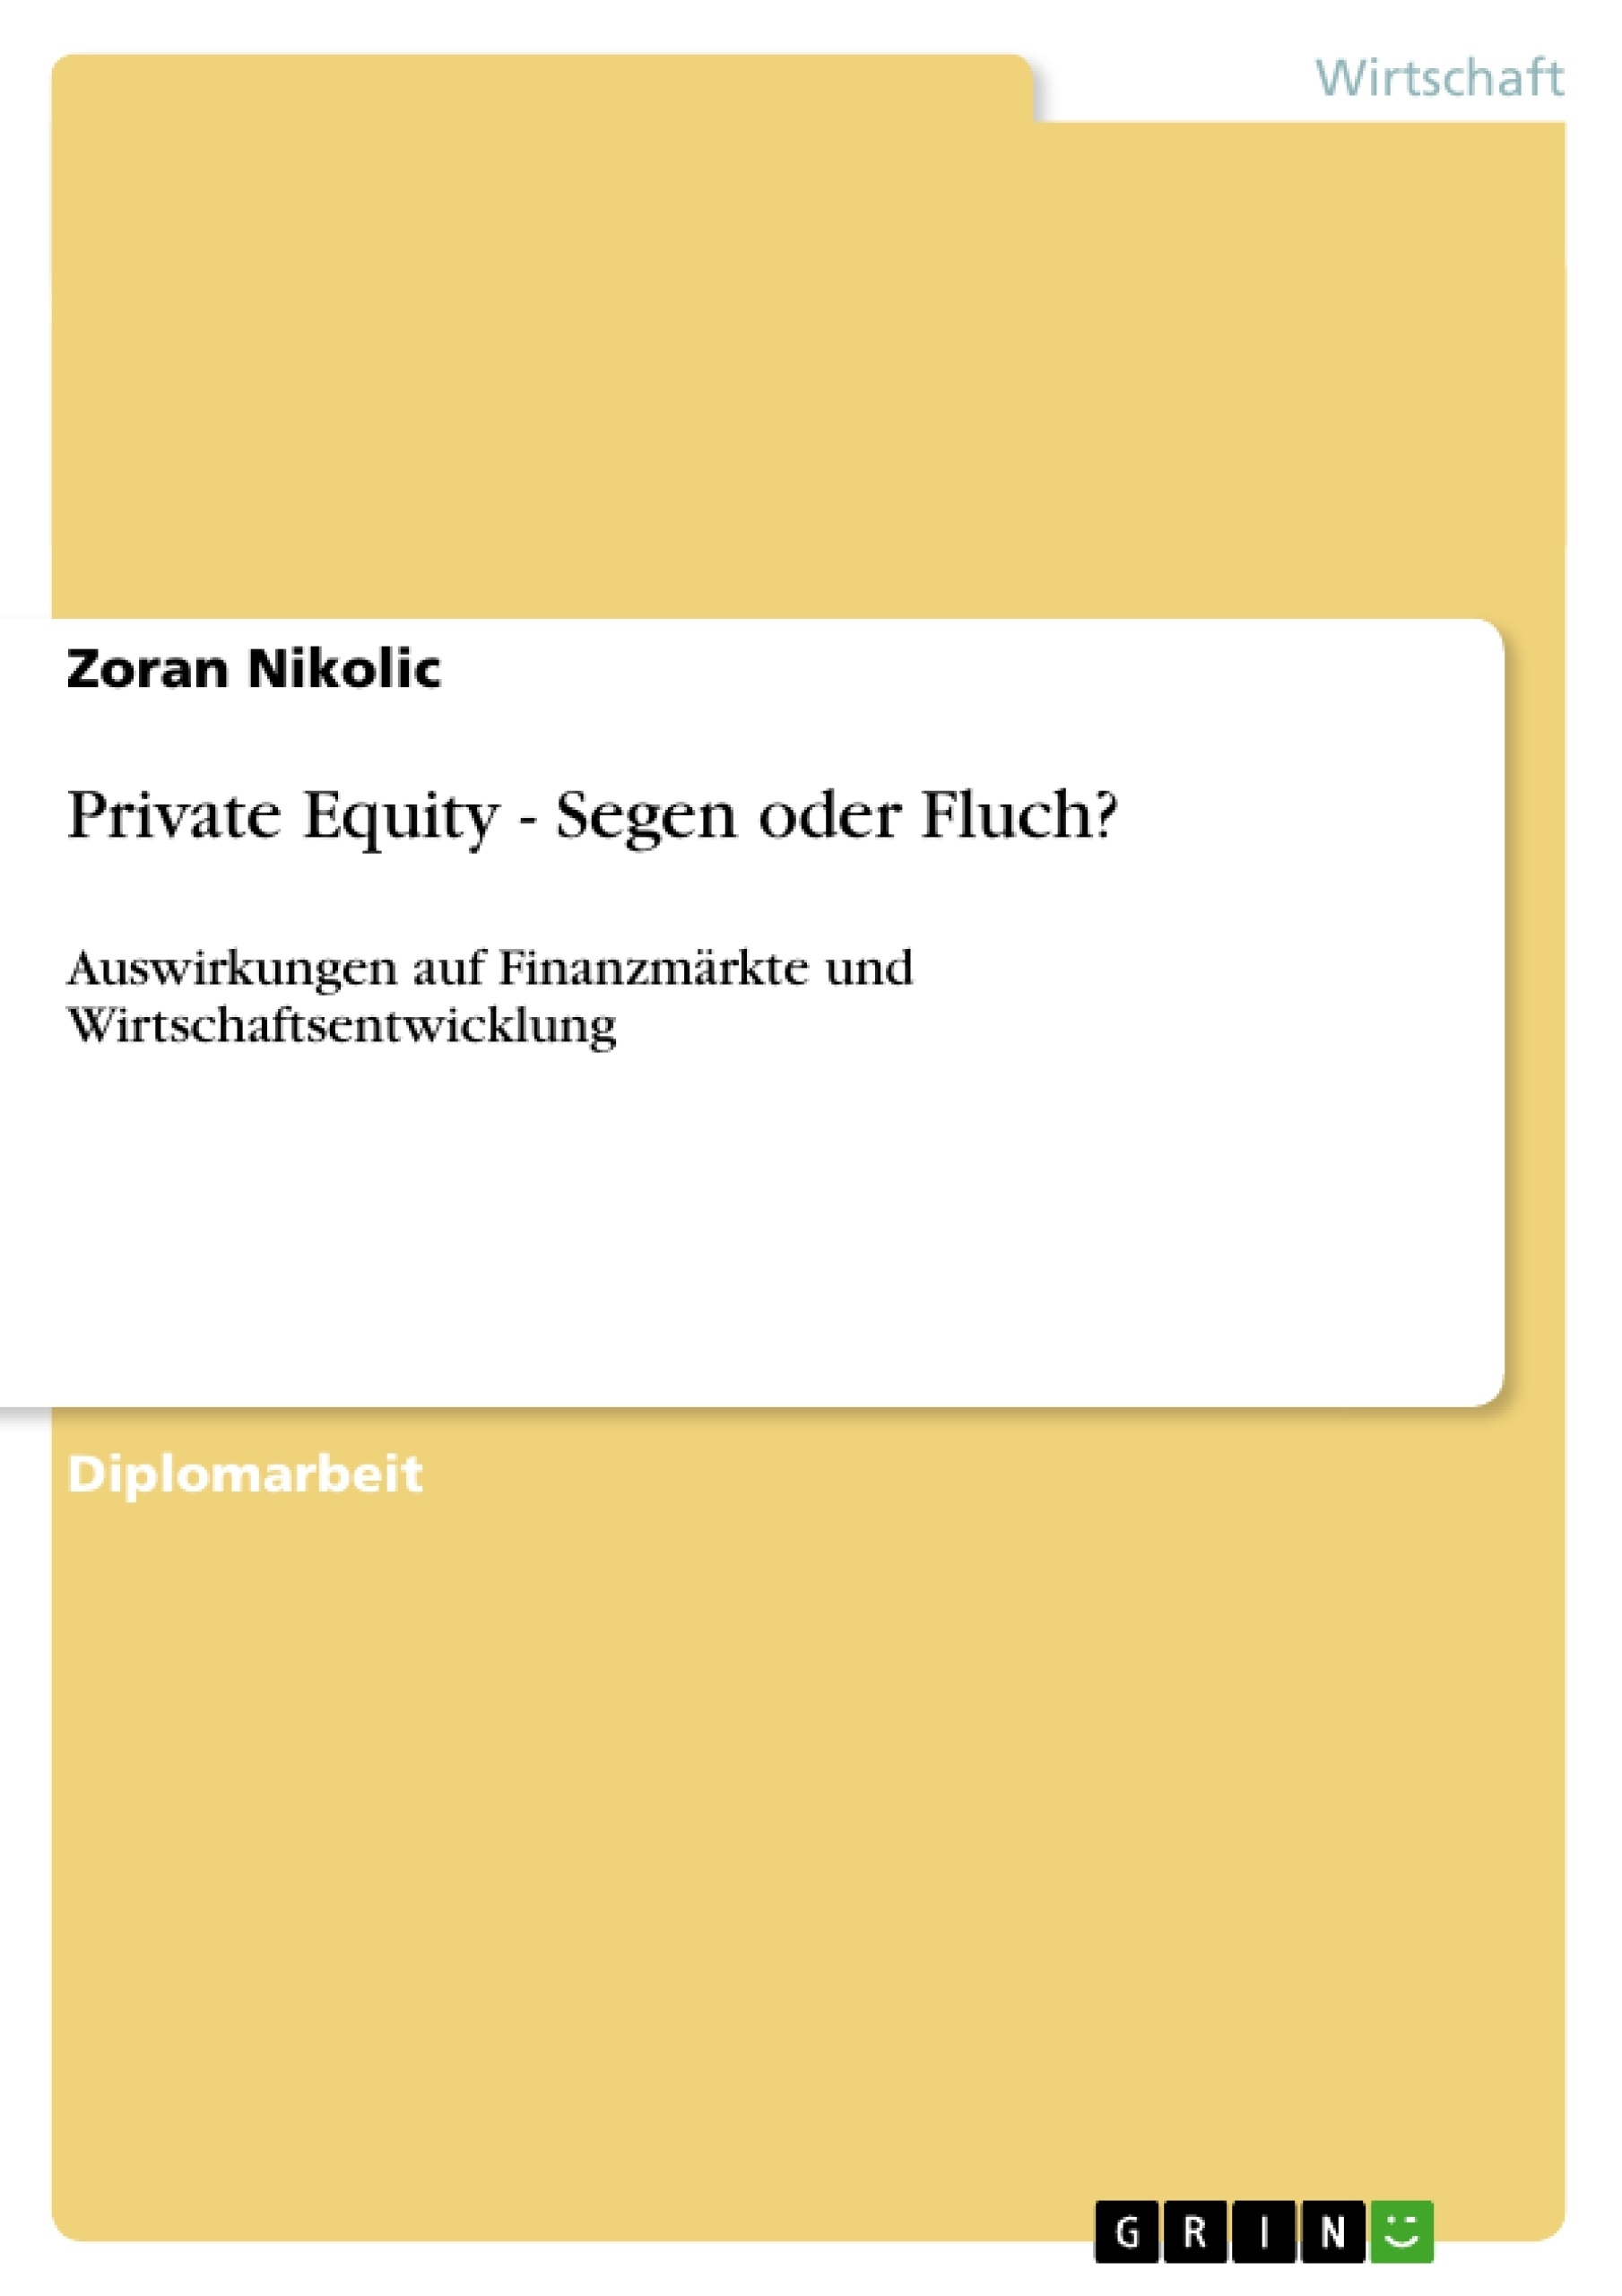 Titel: Private Equity - Segen oder Fluch?